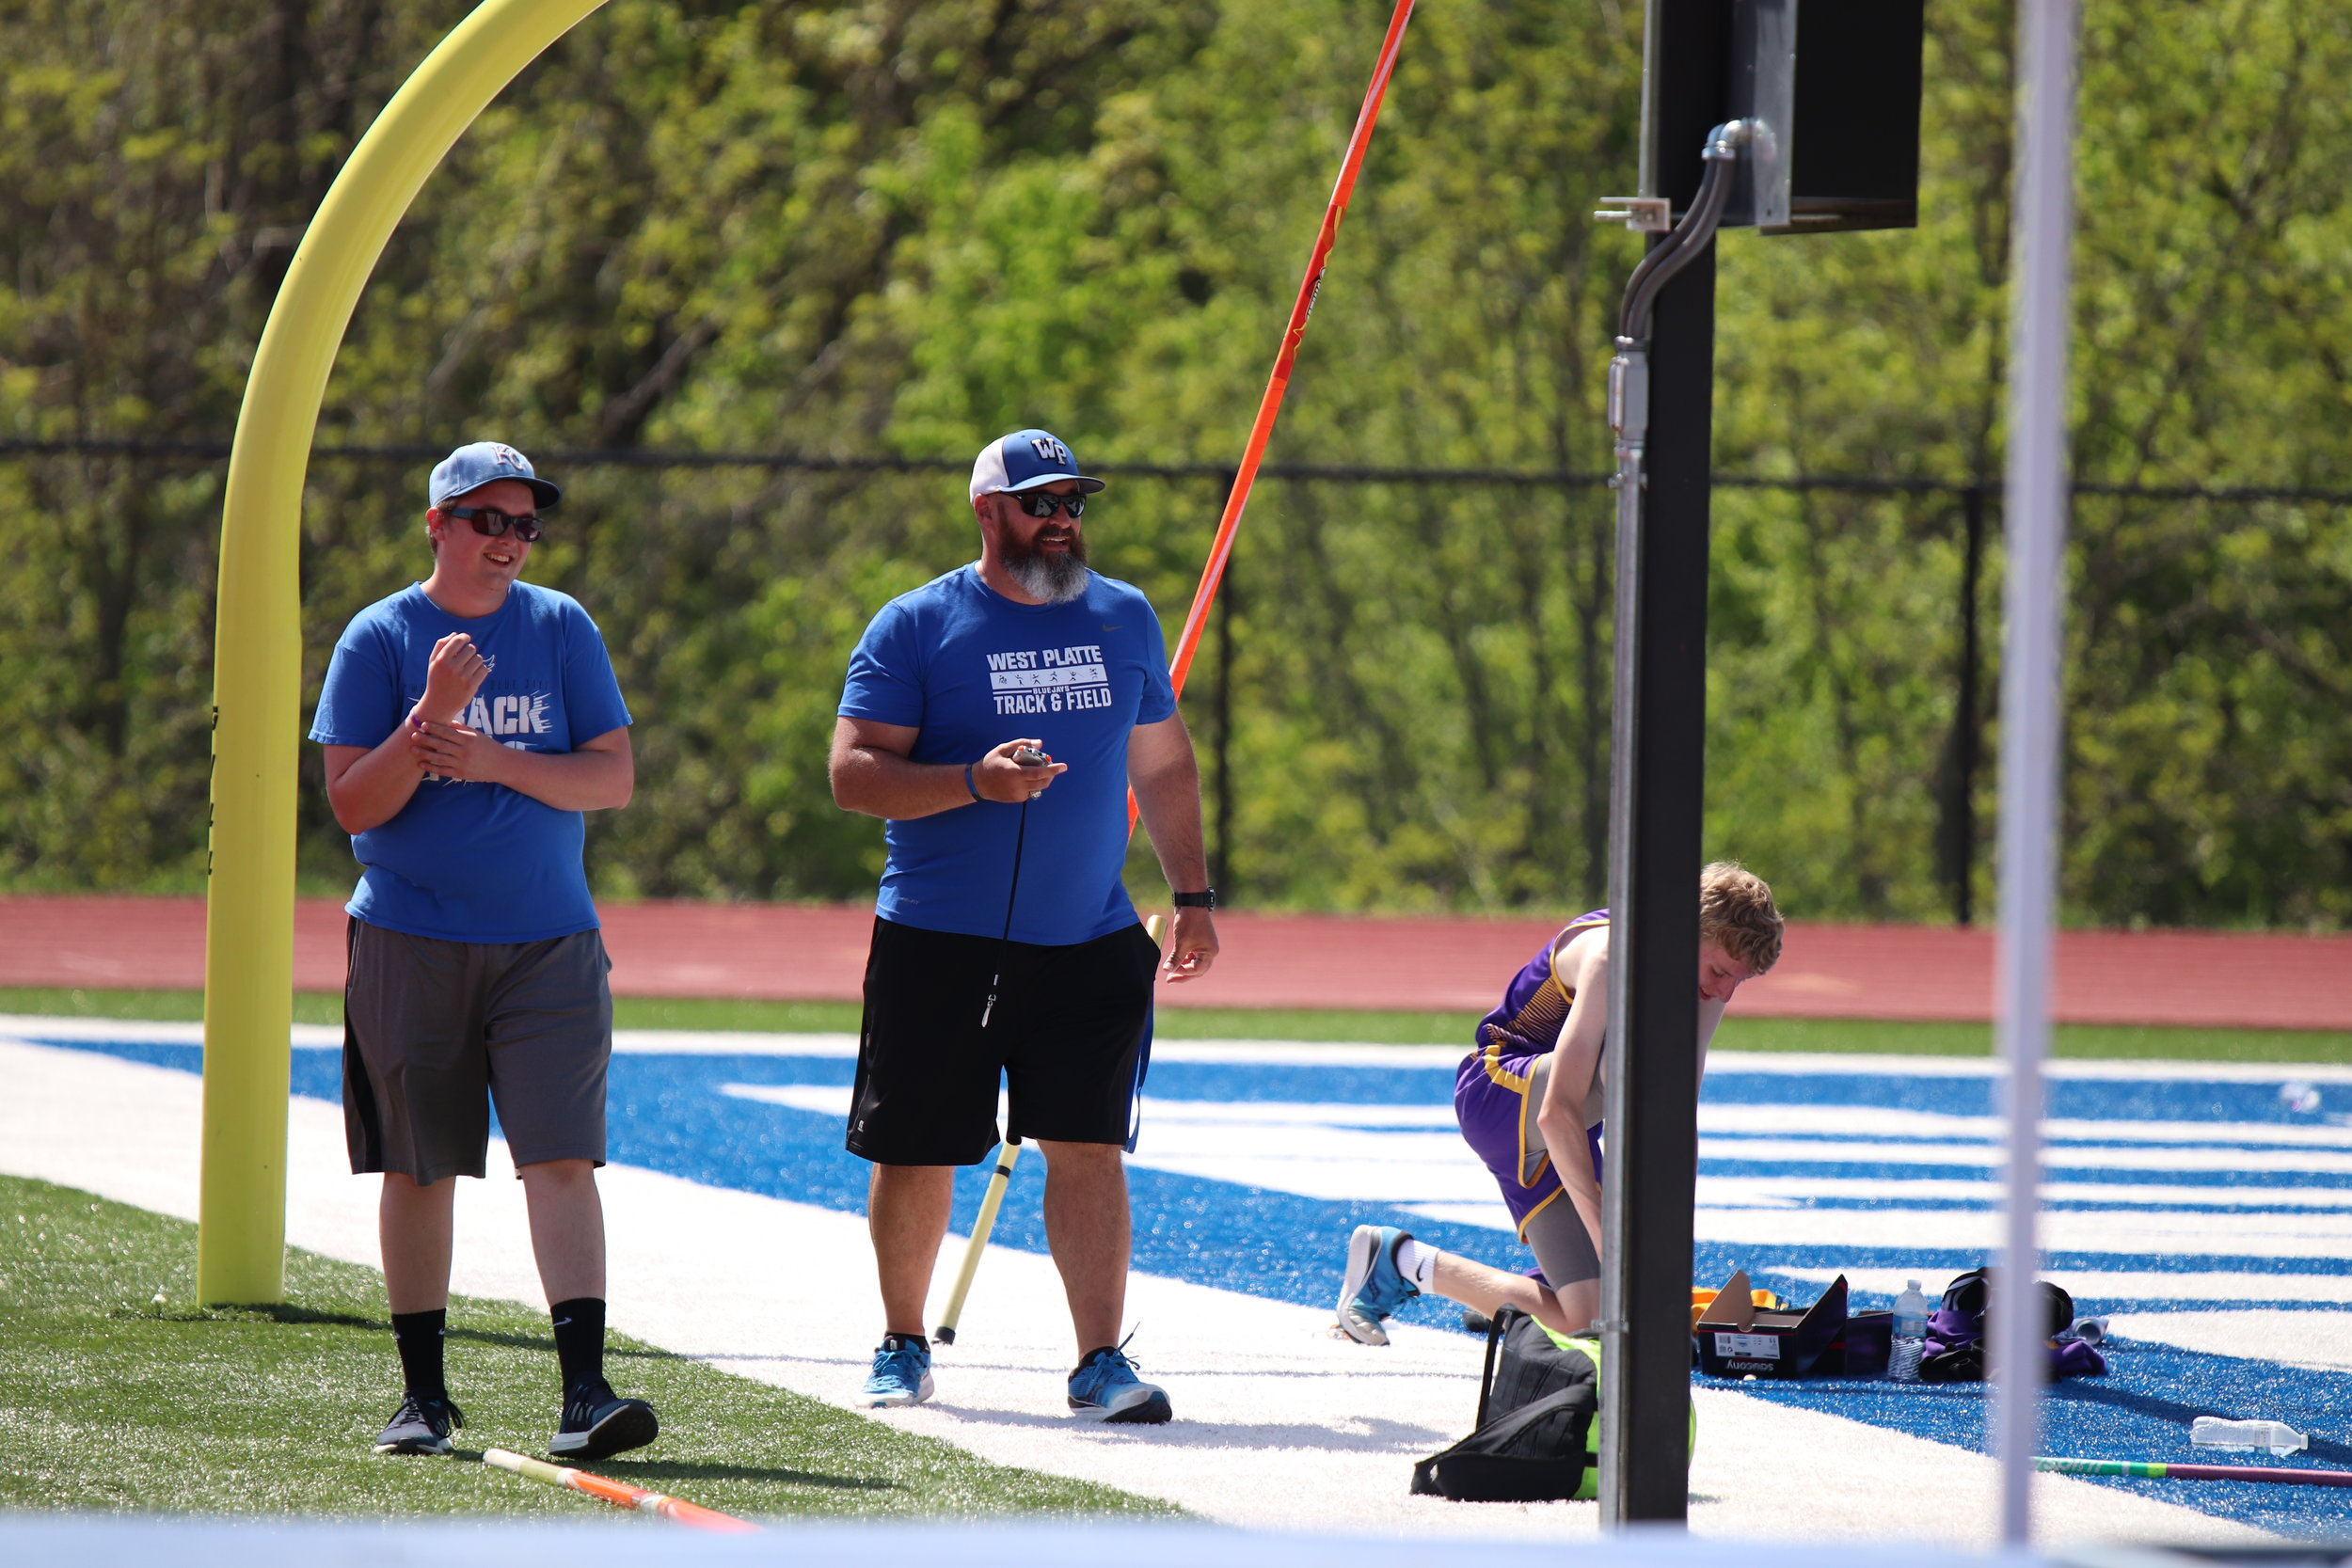 CODY THORN/Citizen photo  West Platte track and field coach Steve Feiden, right, times the girls 4x400-meter relay during the Class 2 District 8 meet earlier this year. Feiden recently resigned as a coach. Next to Feiden is Nate Kendall.